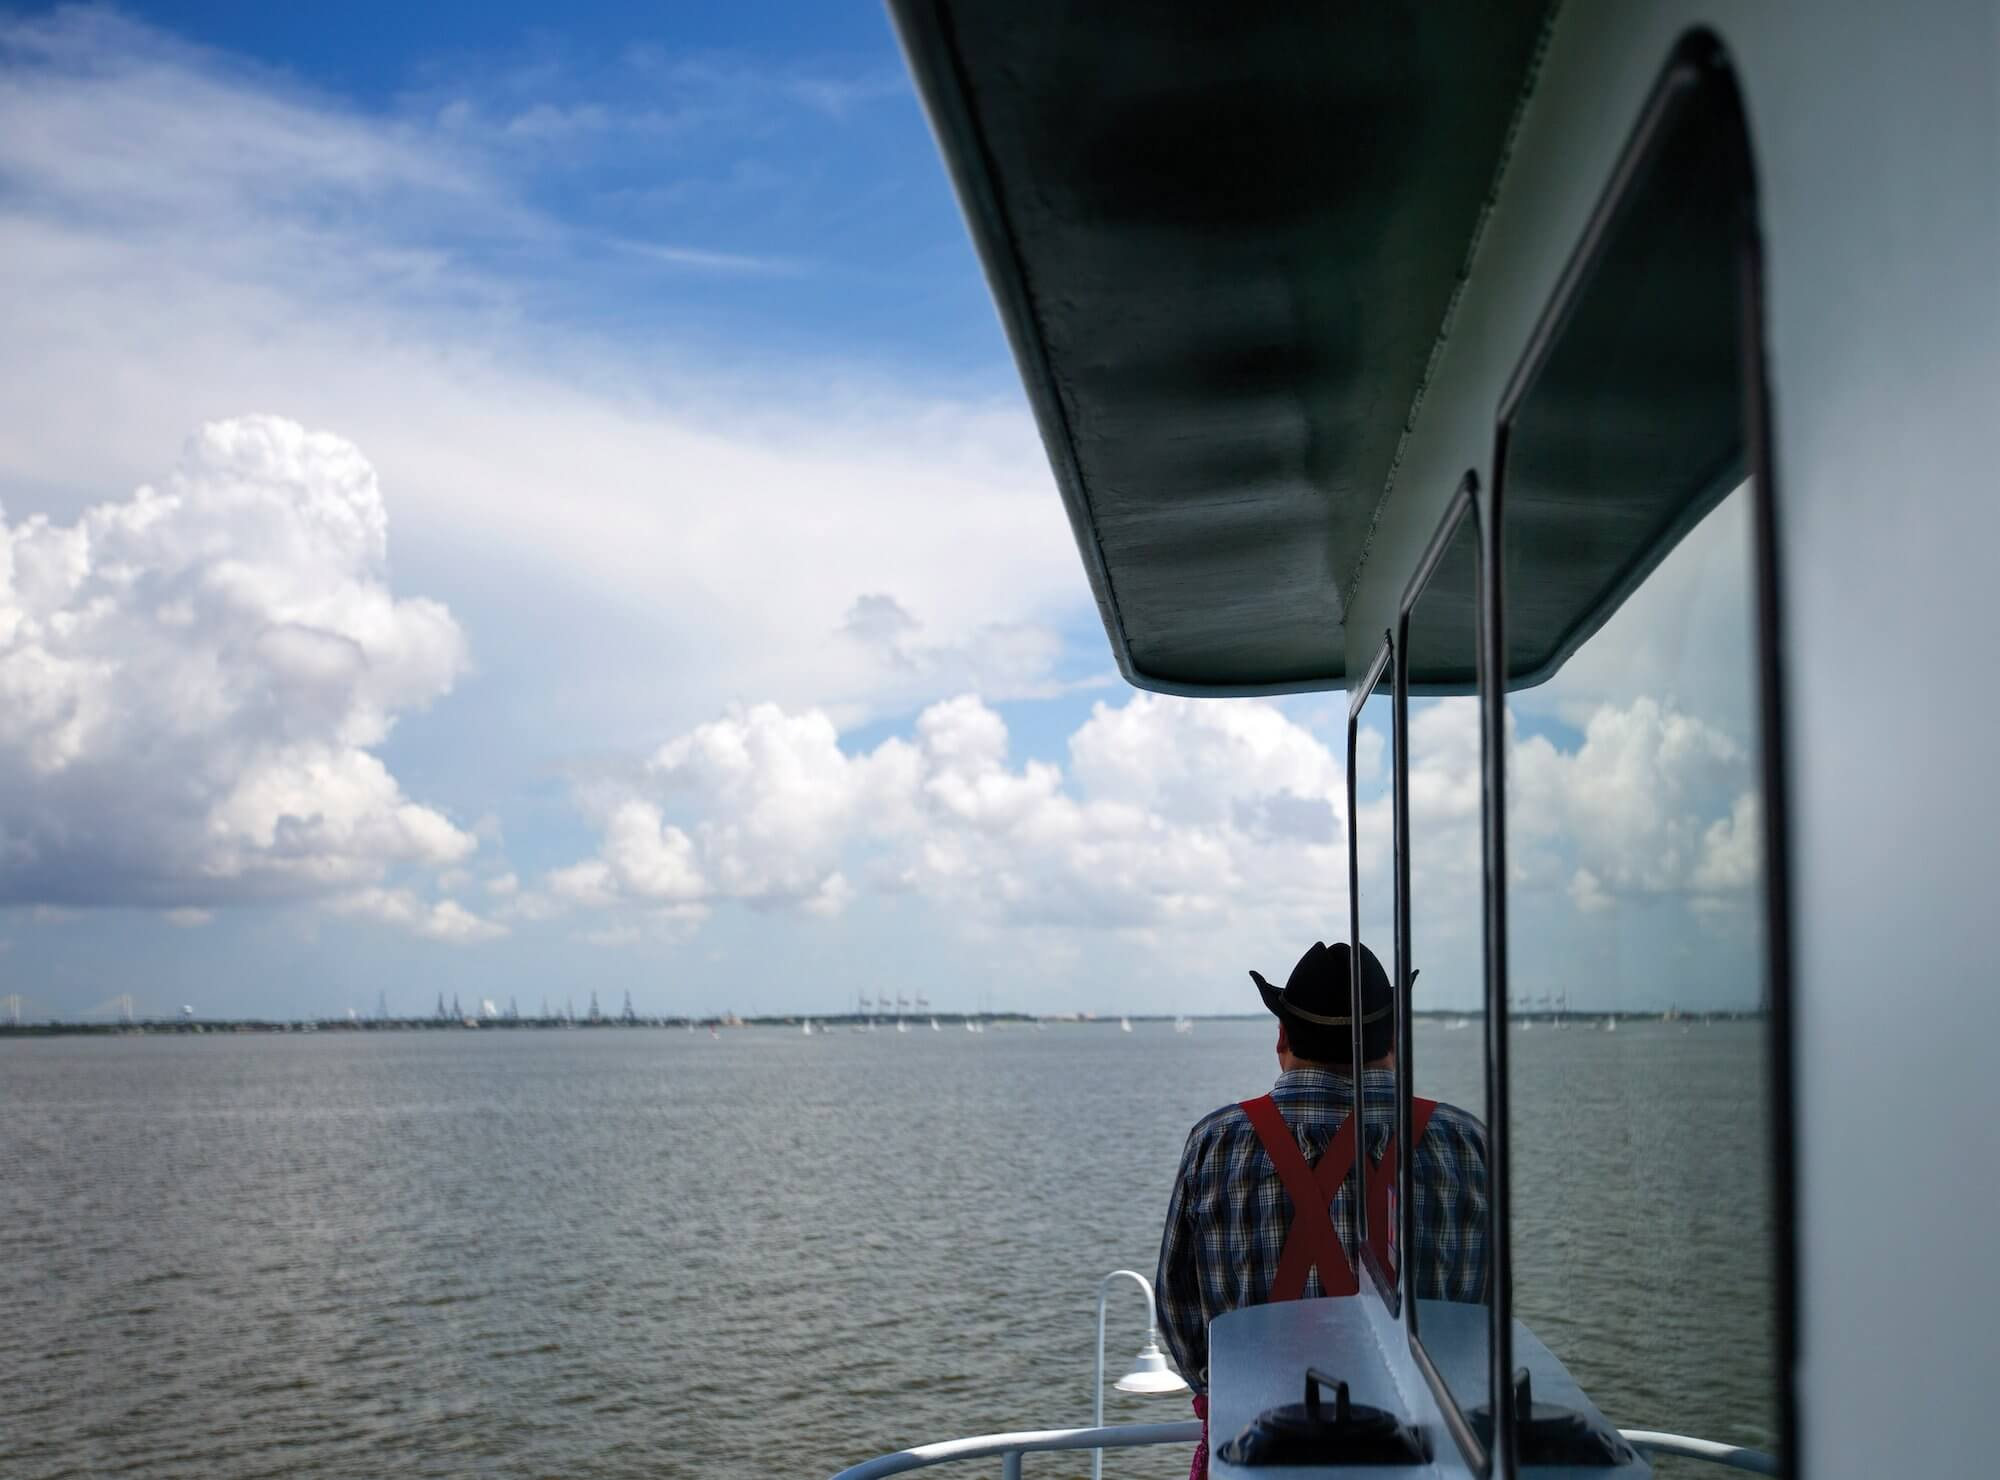 A rodeo clown looks on at the Leukemia Cup Regatta from the spectator boat.